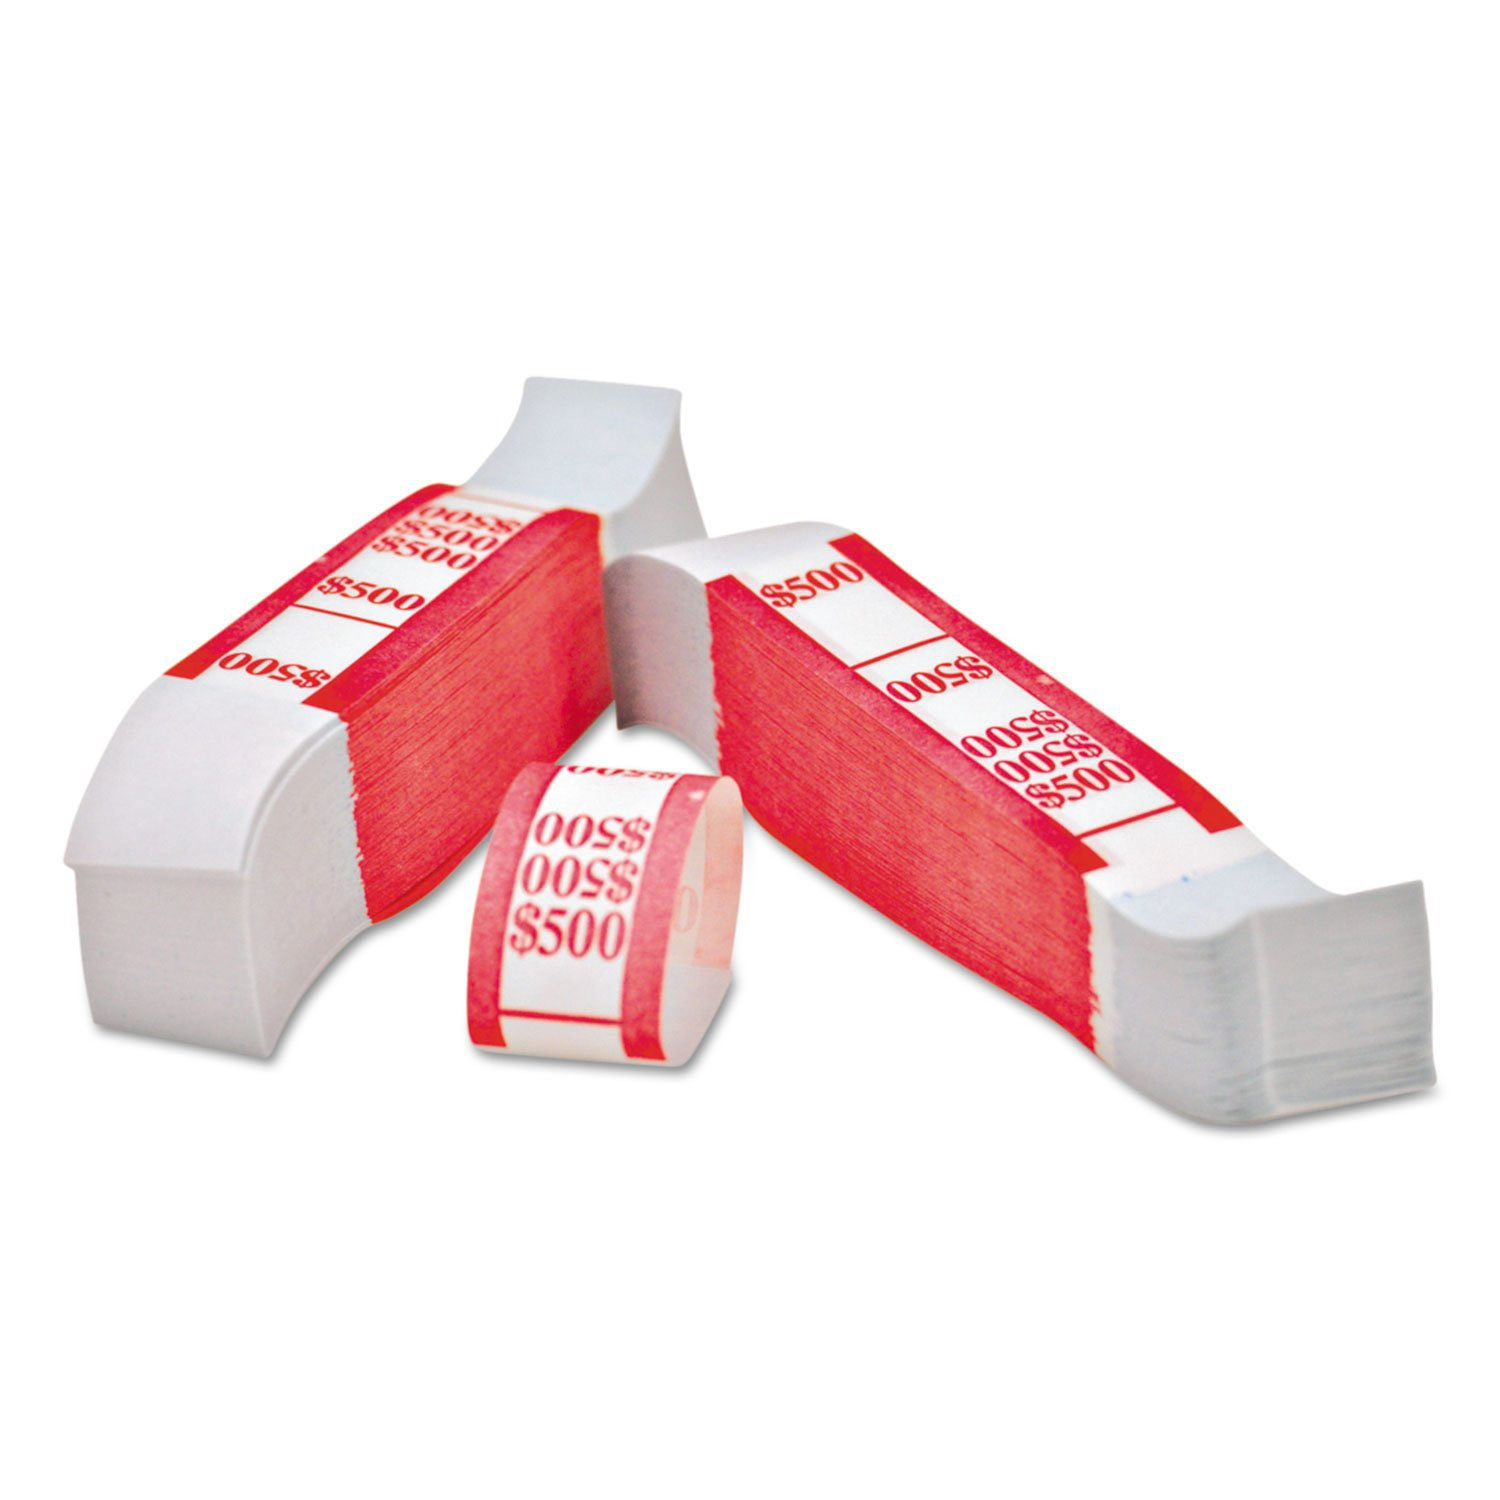 Self-Adhesive Currency Straps Red 1000 Bands//Pack $500 in $5 Bills